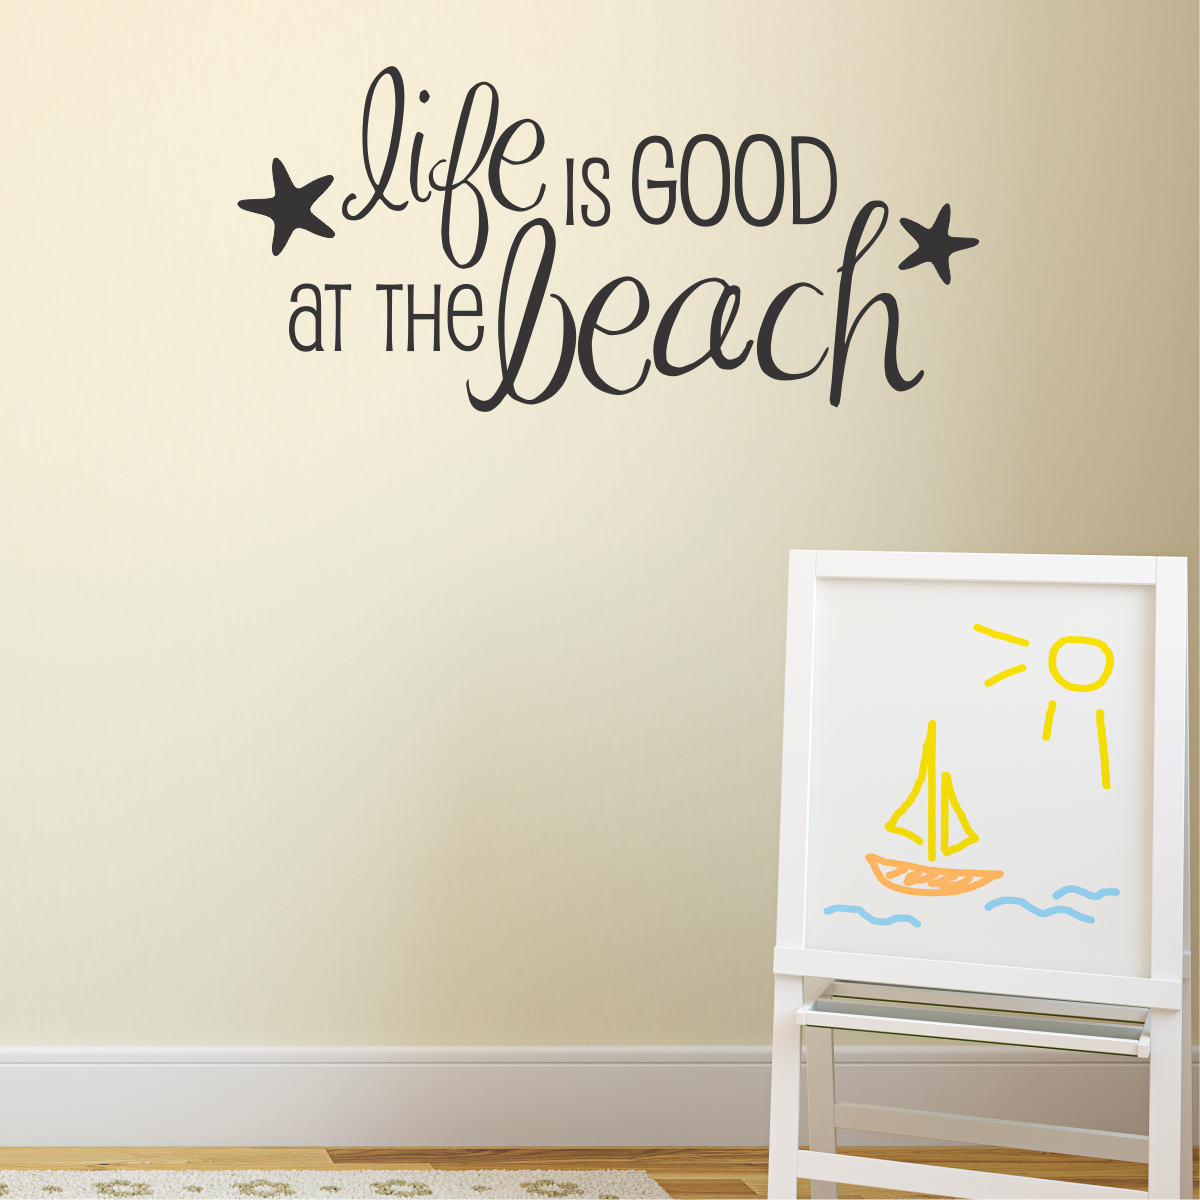 life is good at the beach wall quotes decal wallquotes